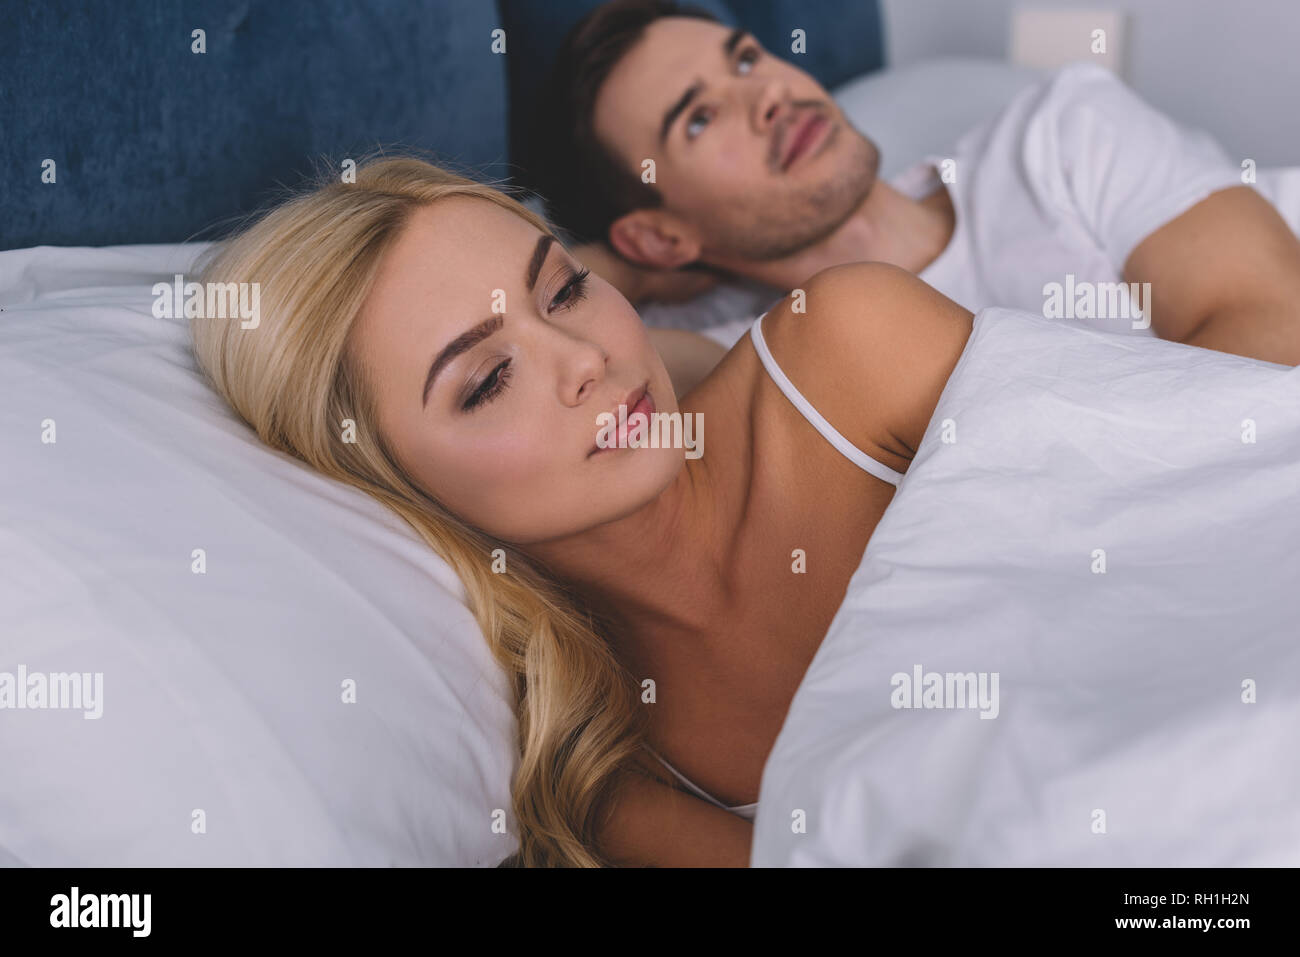 jealous young couple lying together in bed and looking aside, relationship problem concept - Stock Image